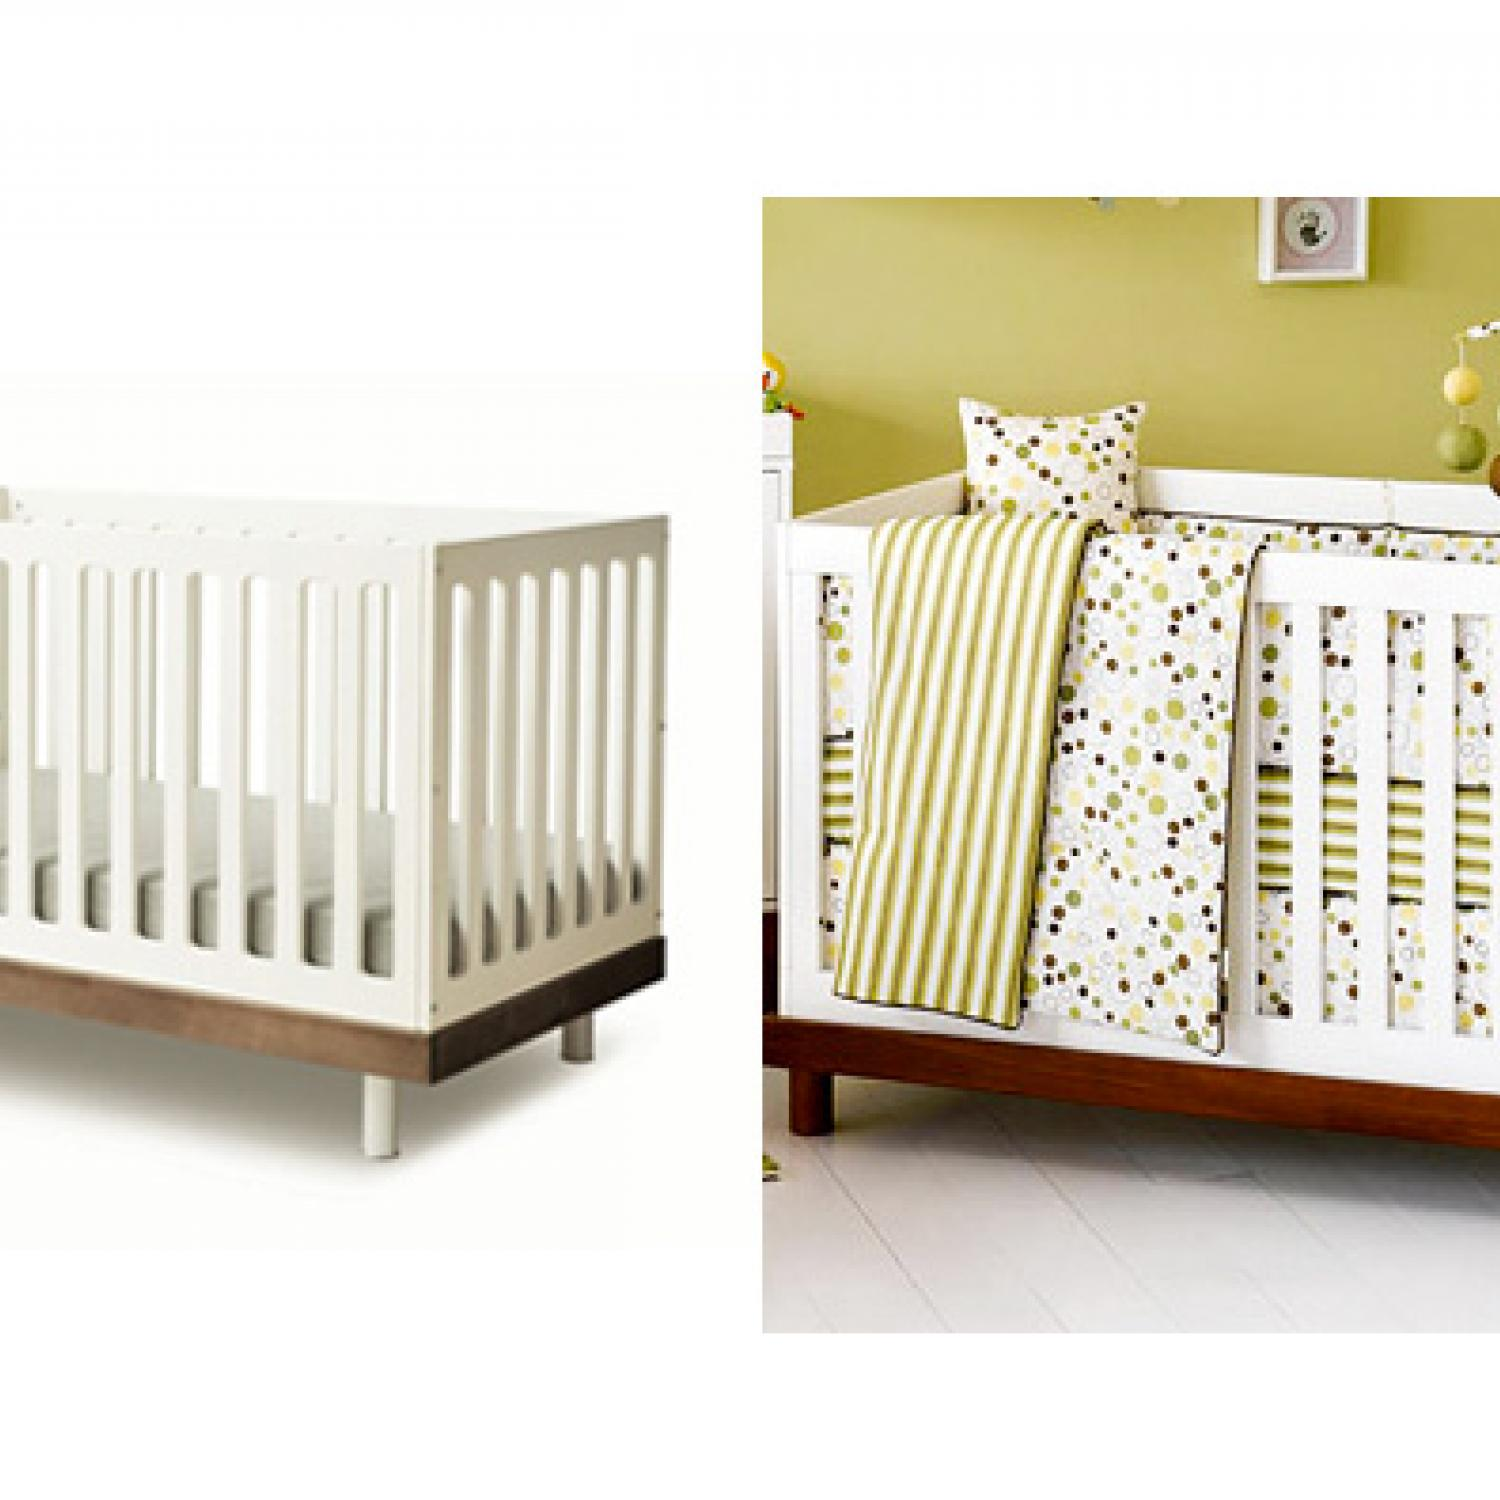 Save Nursery Ideas | Parenting